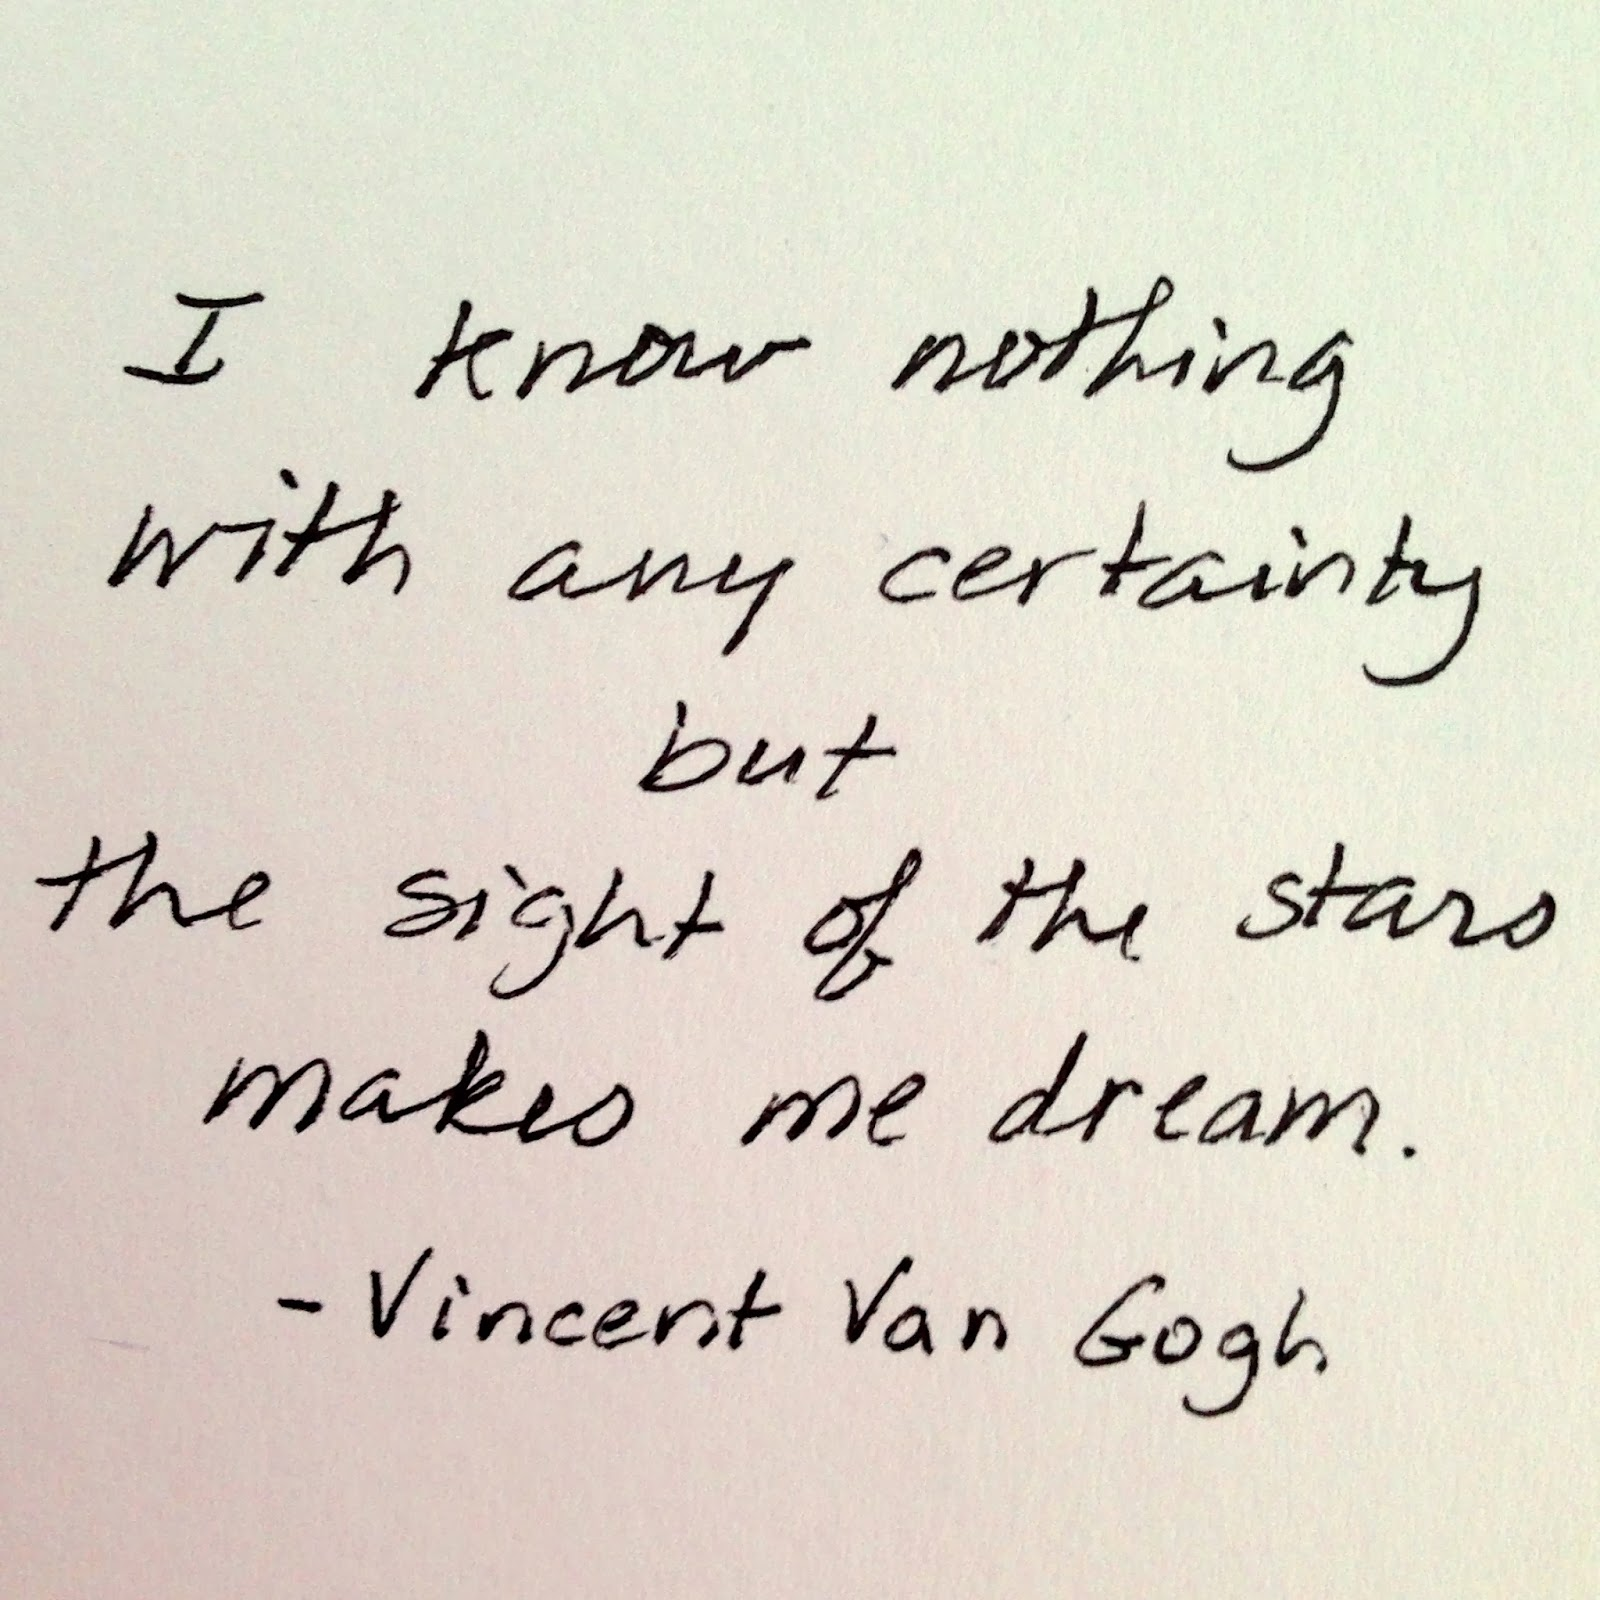 I know nothing with any certainty but the sight of the stars makes me dream - Vincent Van Gogh